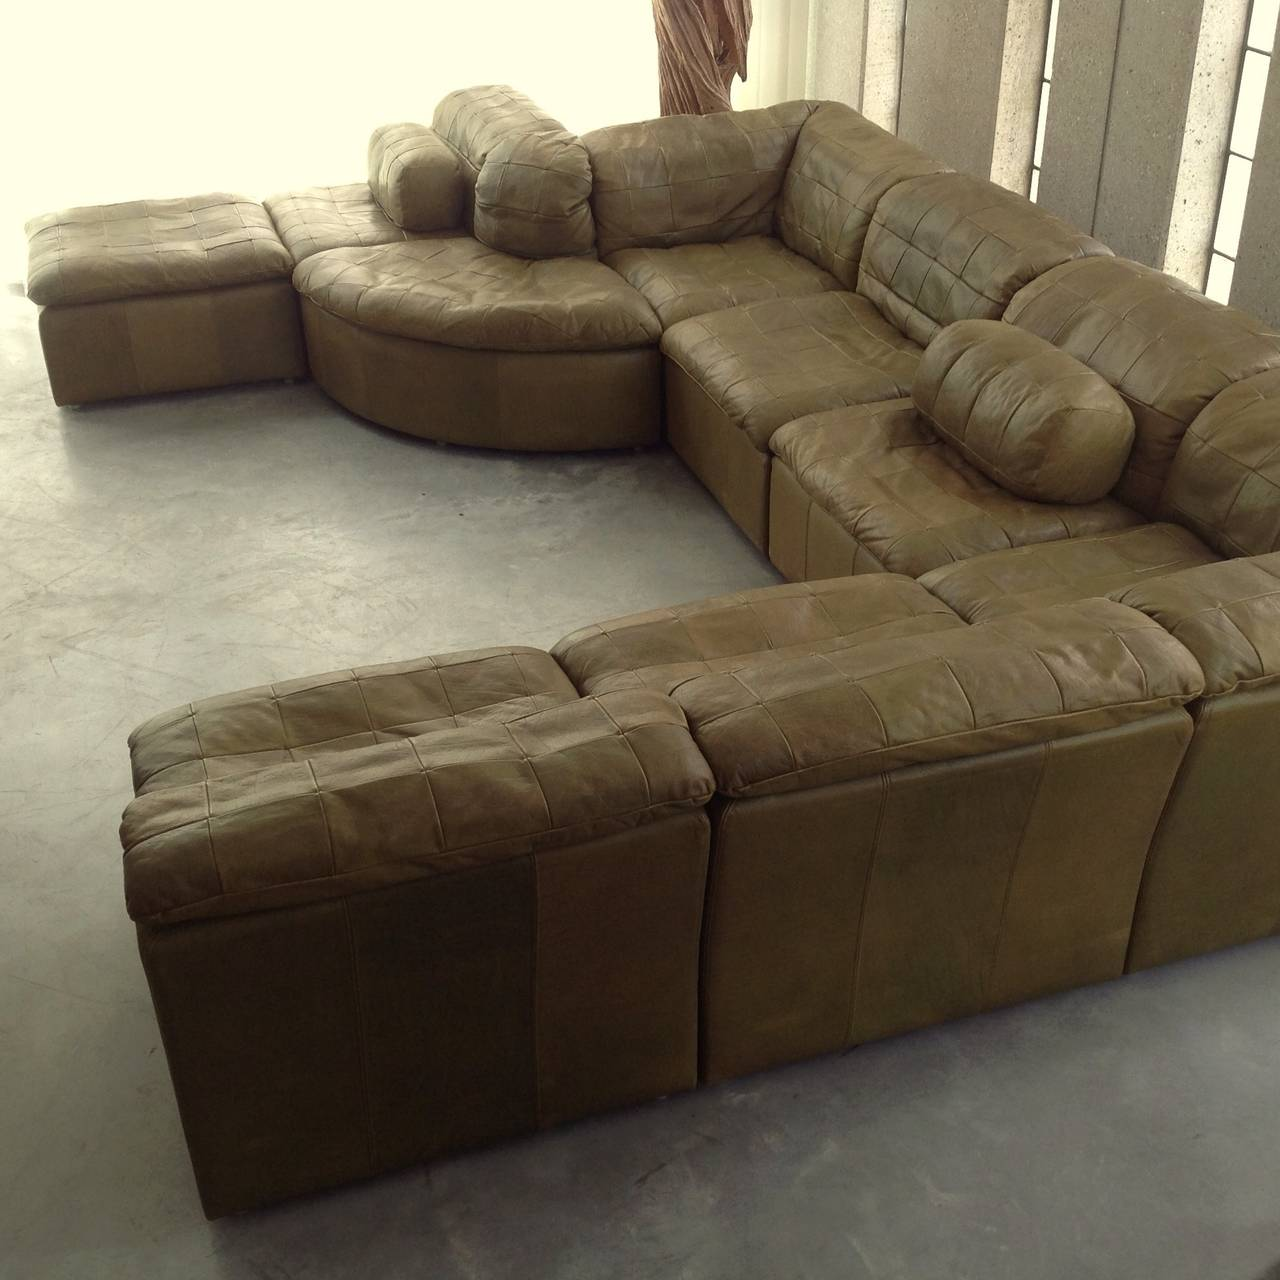 Modular Furniture Sofa: Patchwork Modular Sofa In Original Olive Green Leather